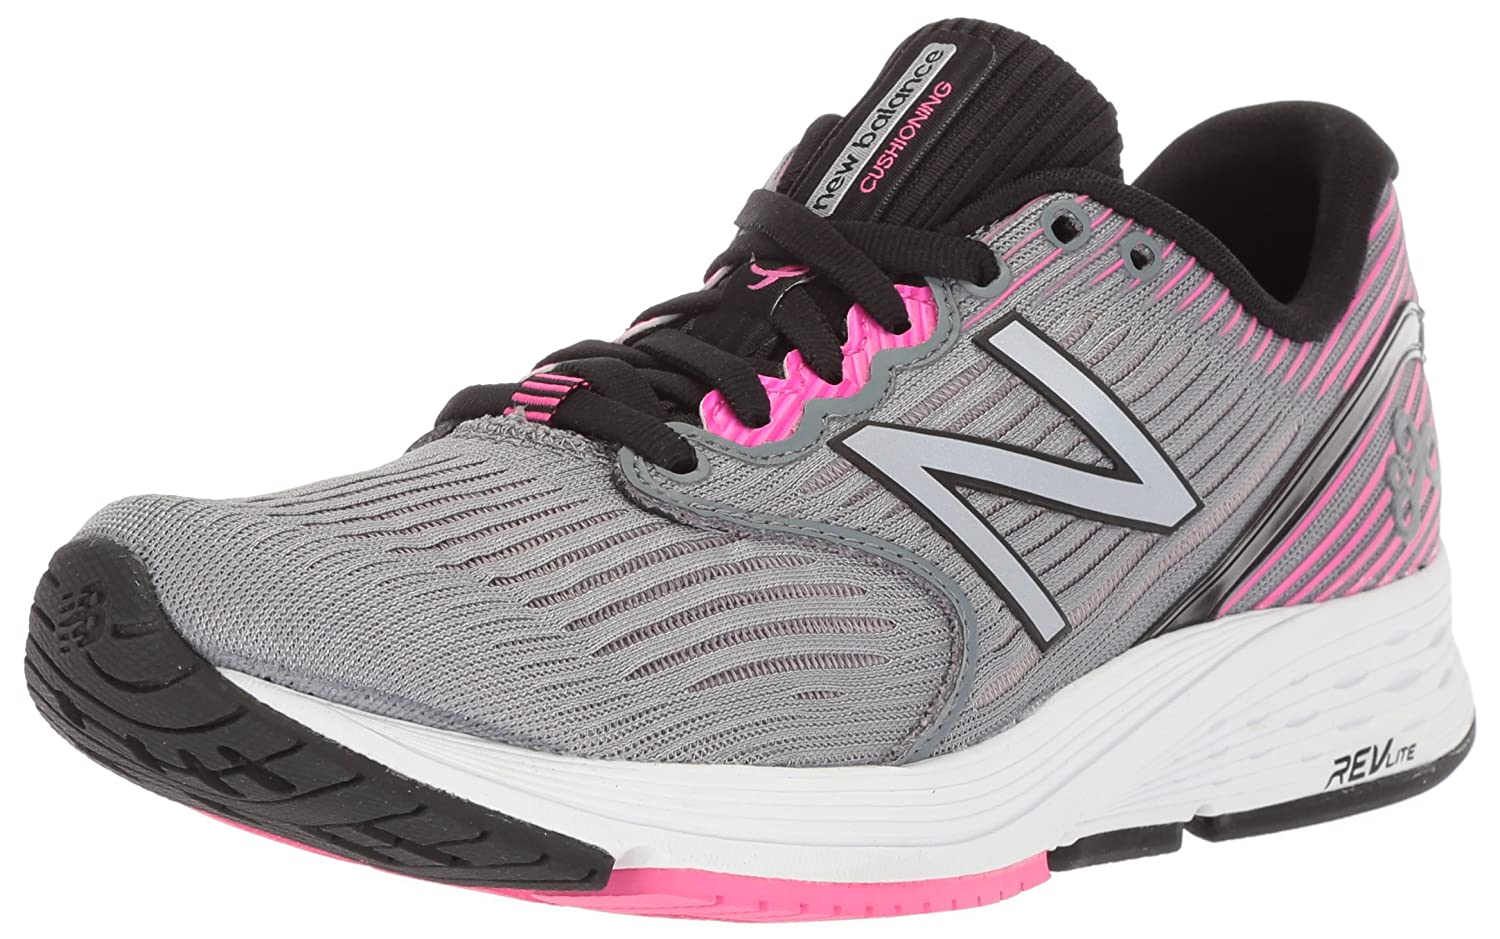 New Balance Women's 890v6 Running Shoe B06XS91LQL 5 B(M) US|Grey/Pink